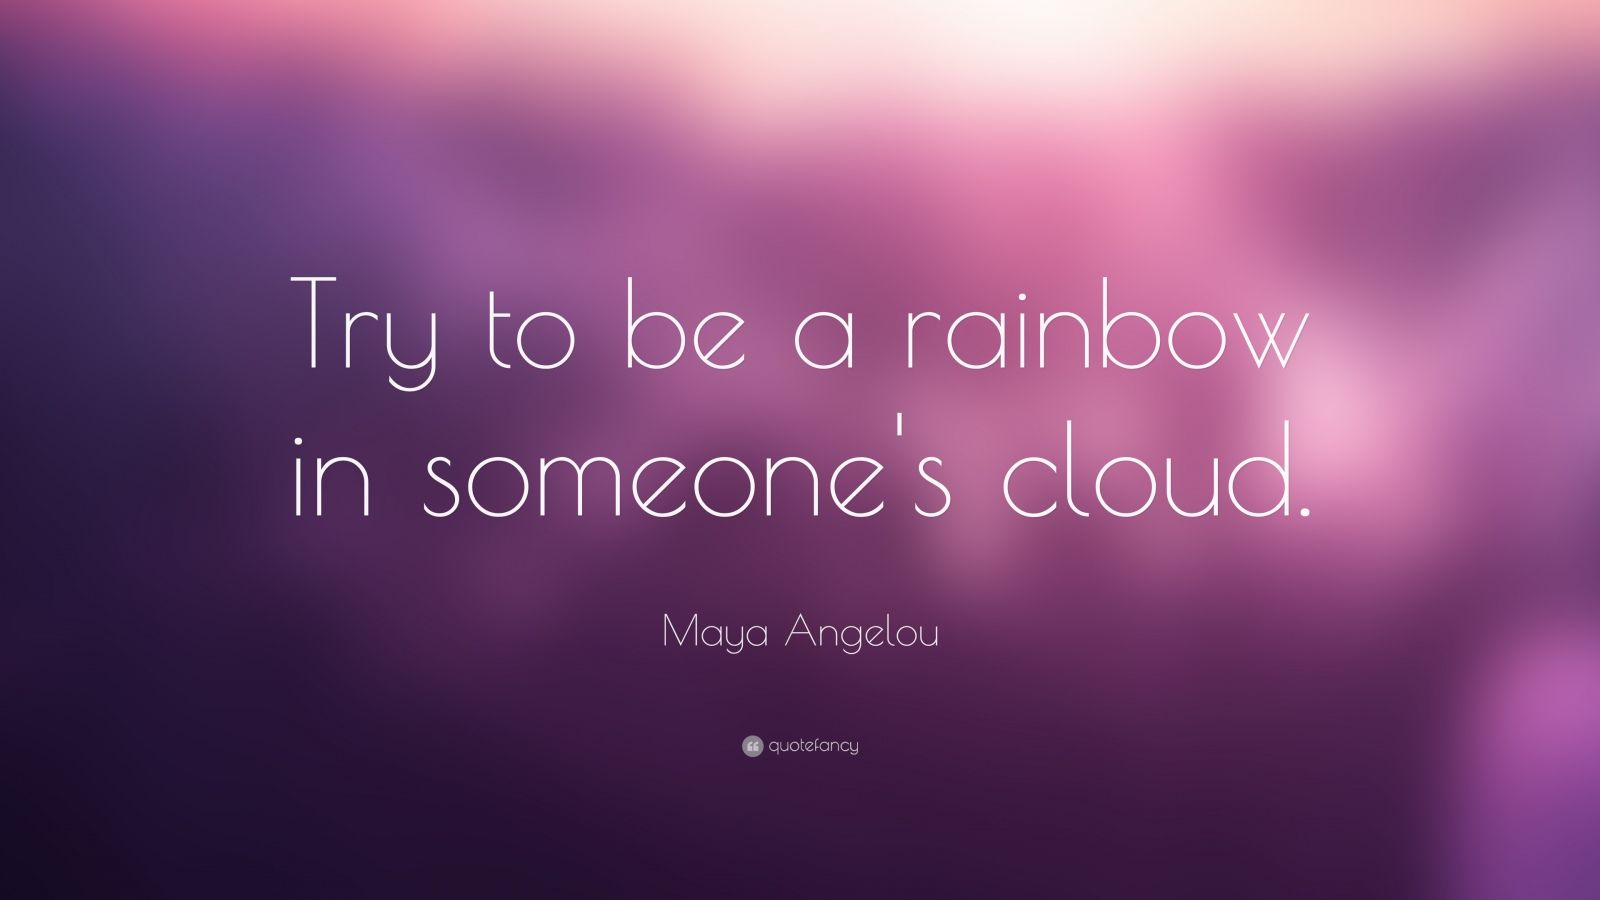 Try To Be A Rainbow Quote Desktop Wallpaper Maya Angelou Quotes 25 Wallpapers Quotefancy